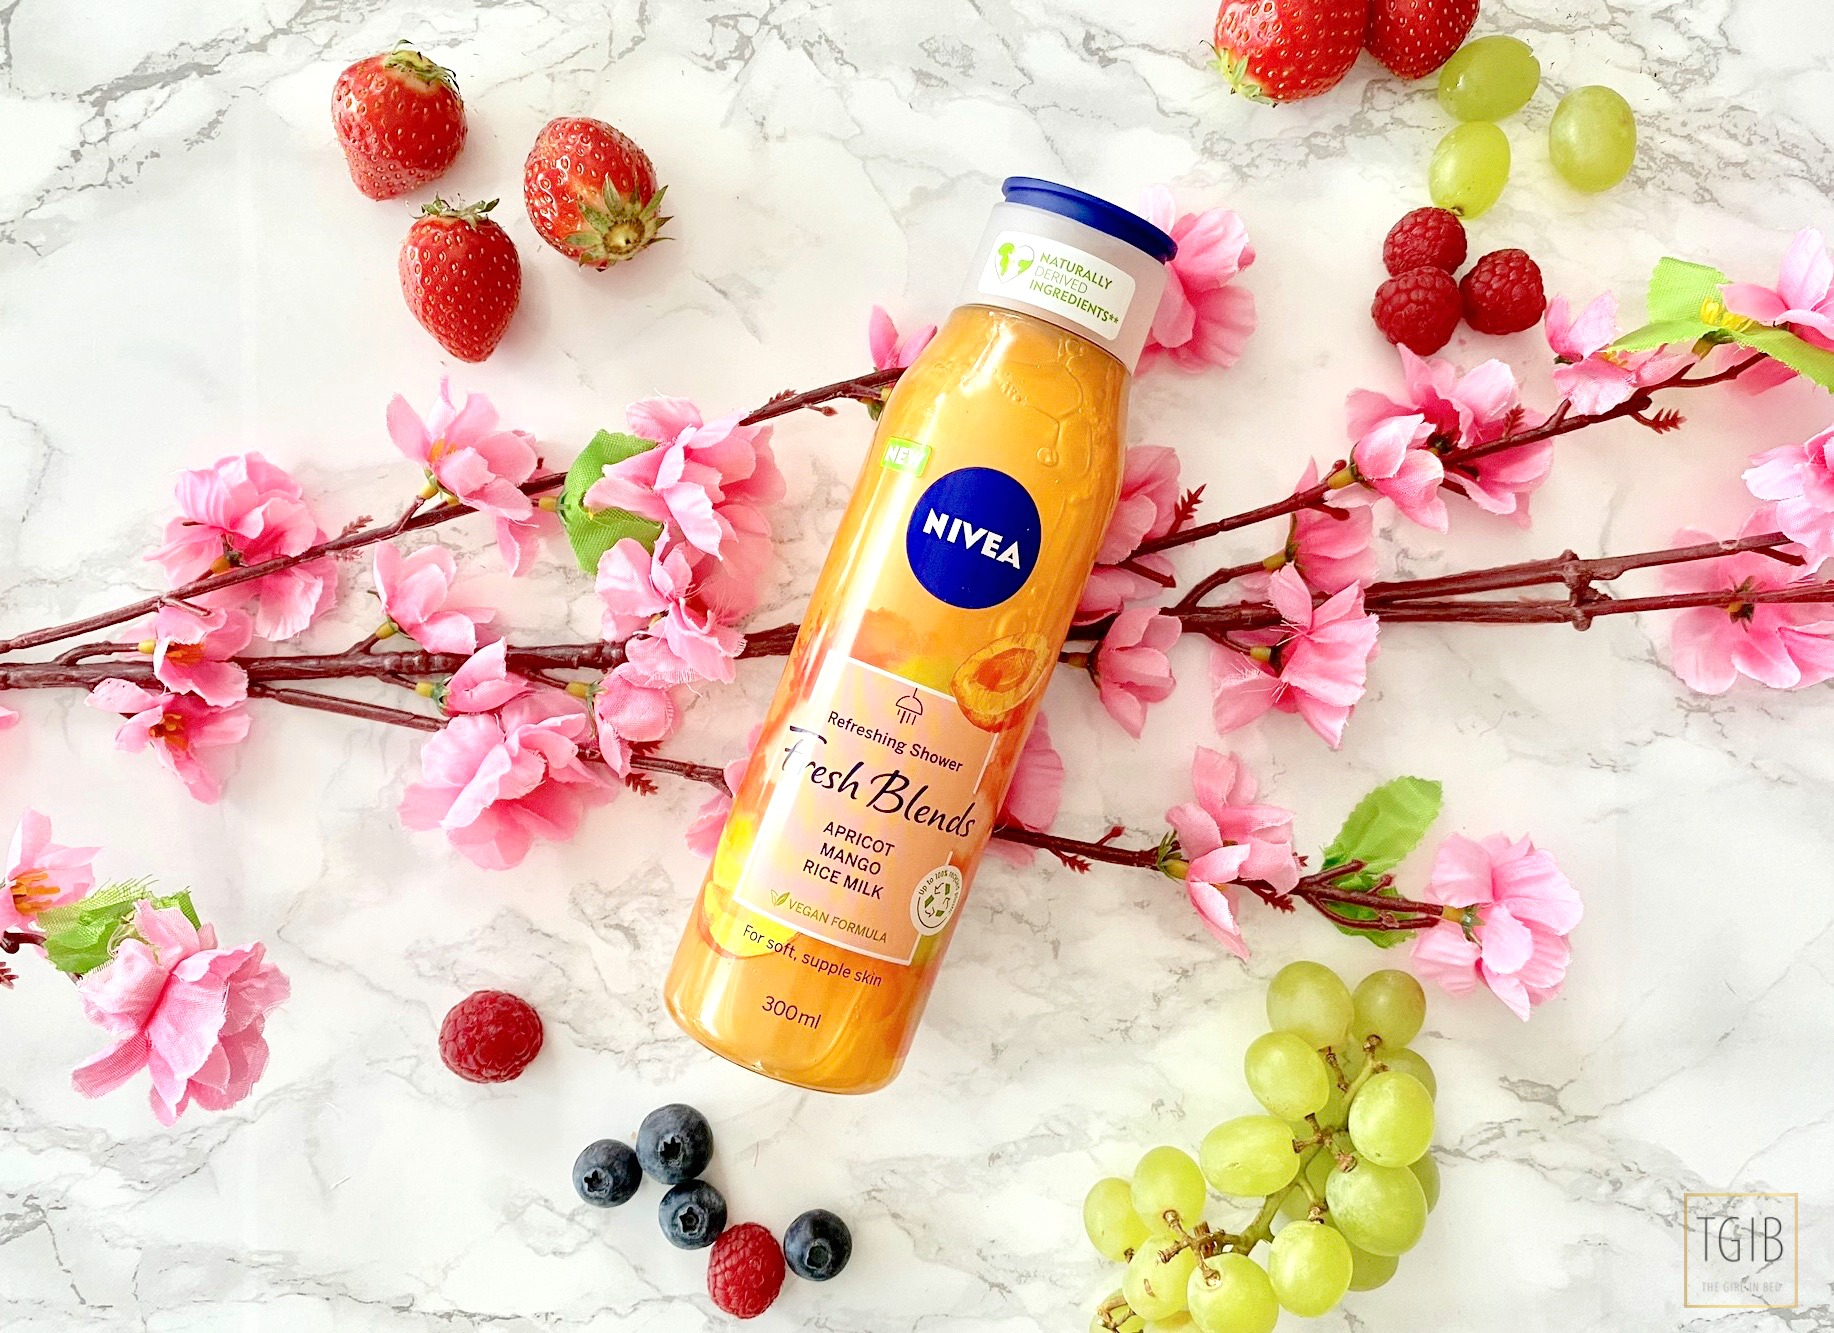 Nivea Fresh Blends Apricot Mango & Rice Milk